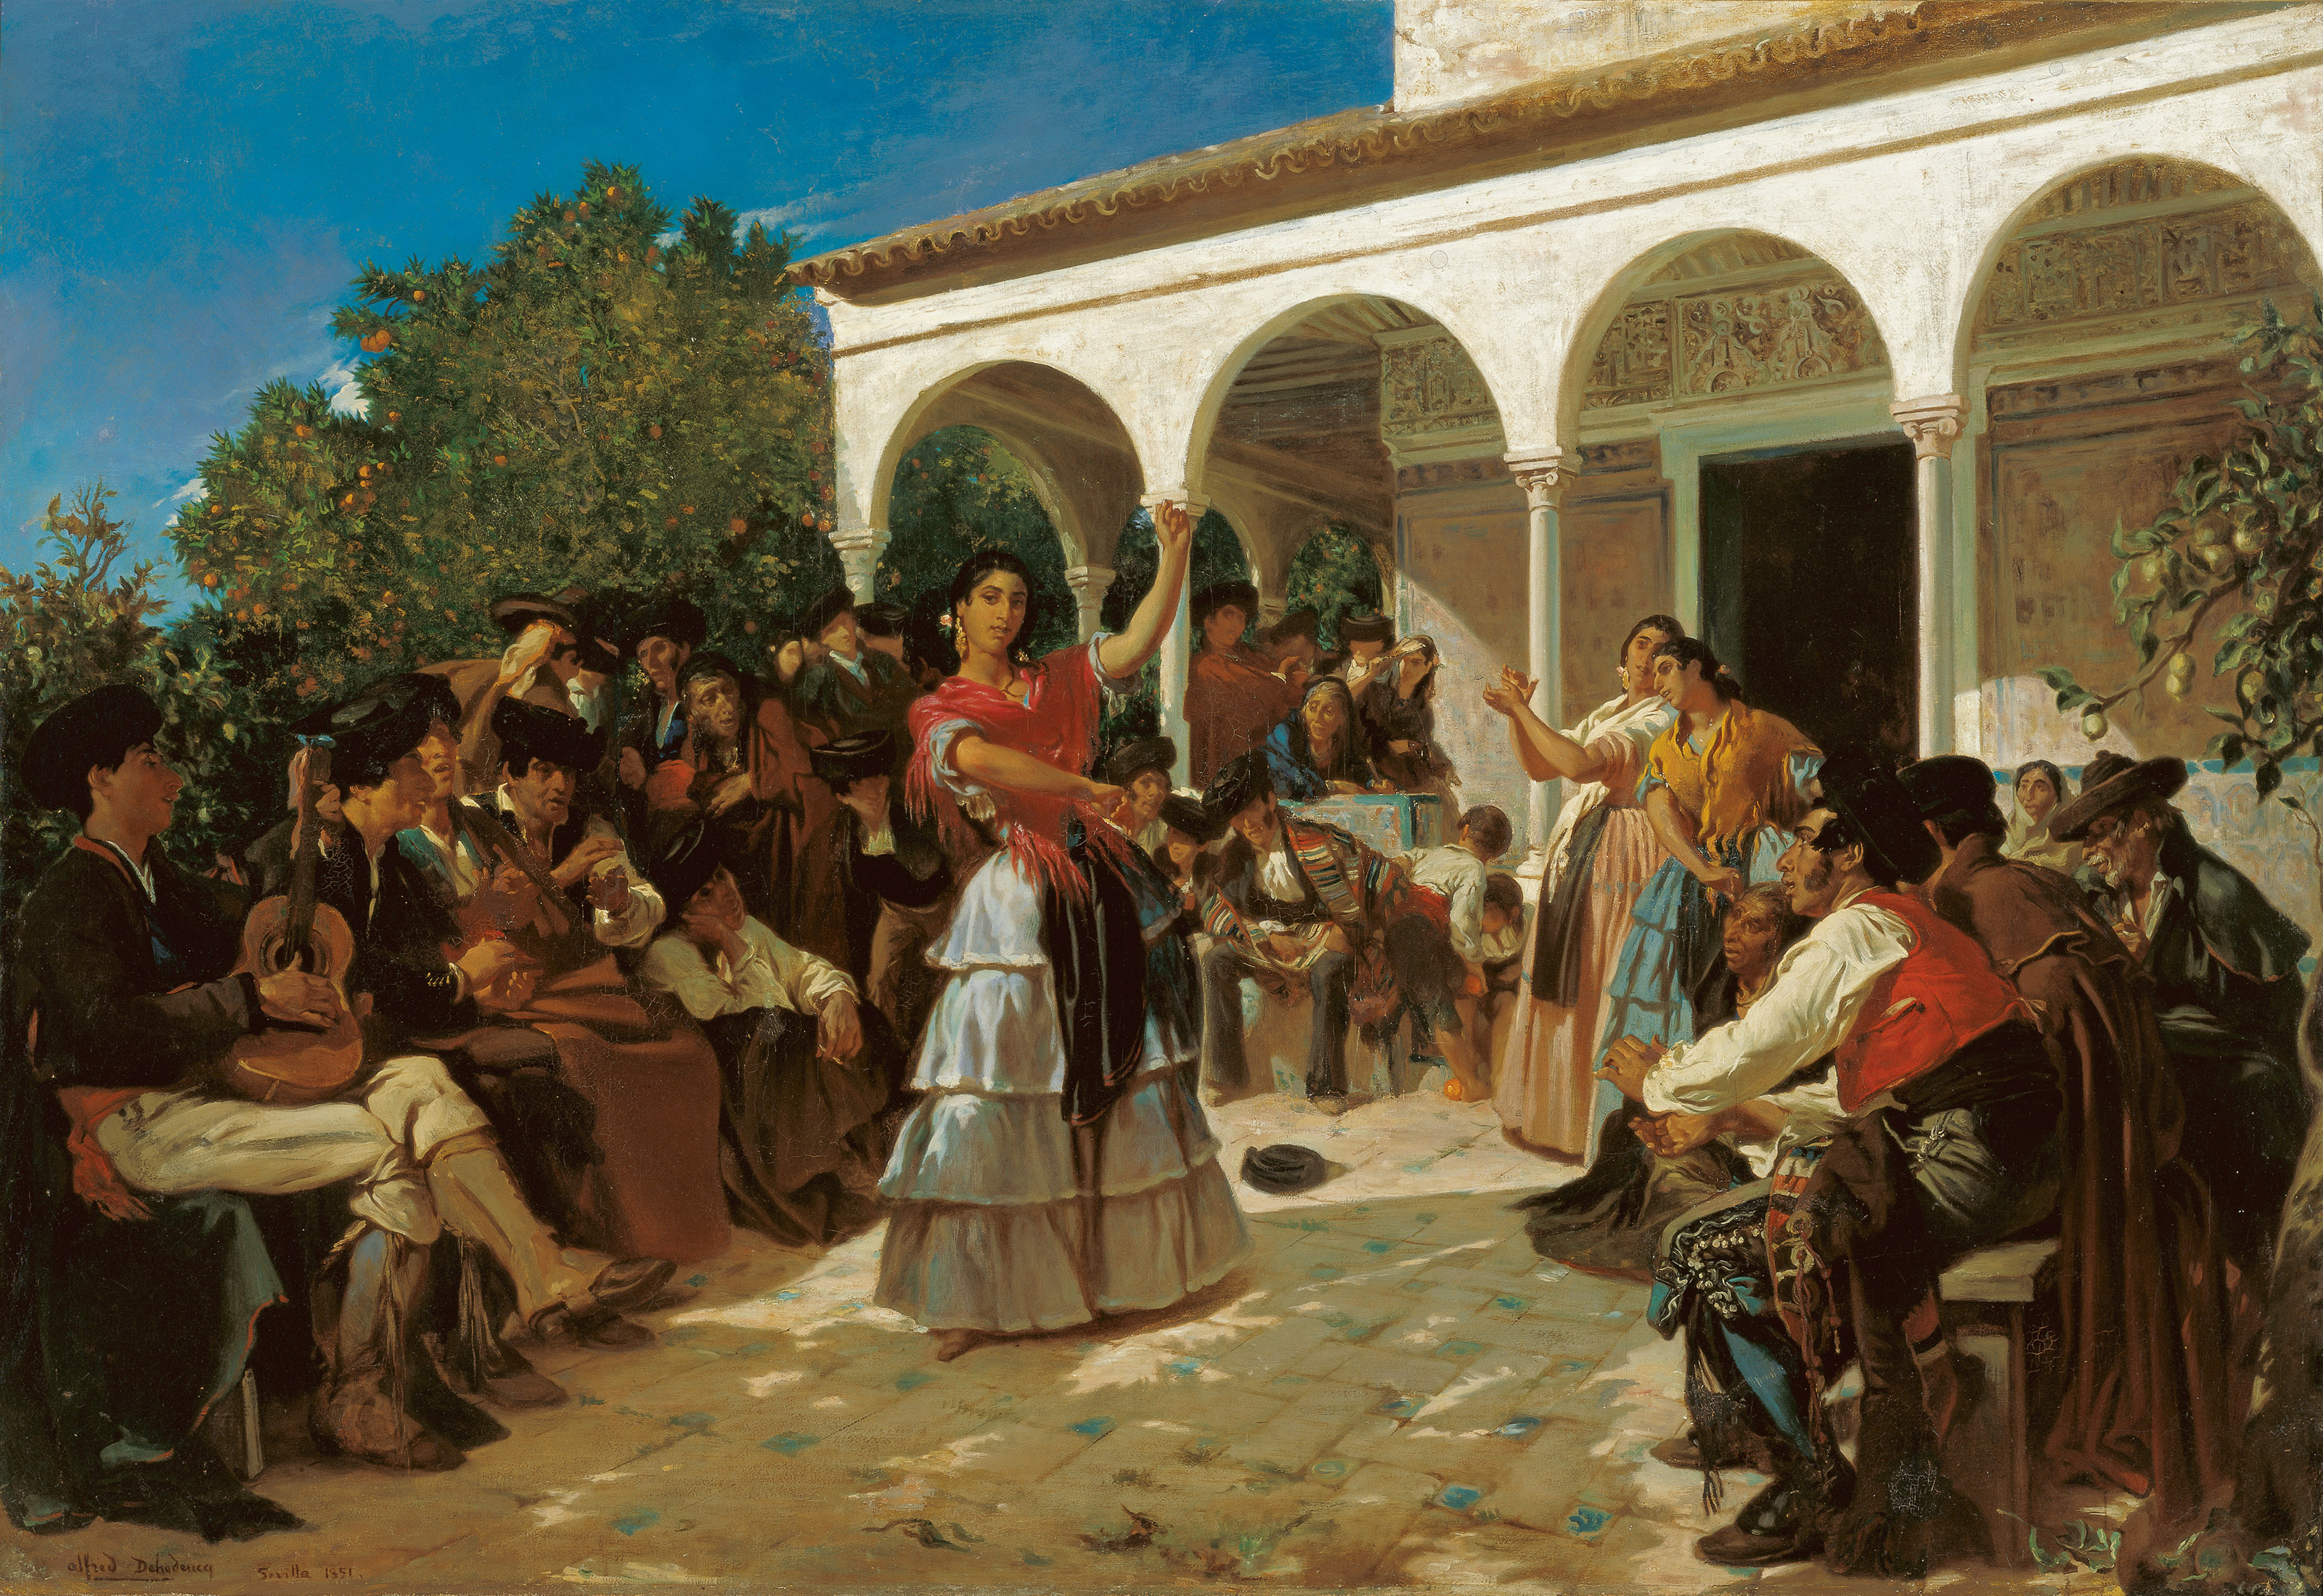 A Gypsy Dance in the Gardens of the Alcázar, in front of Charles V Pavilion